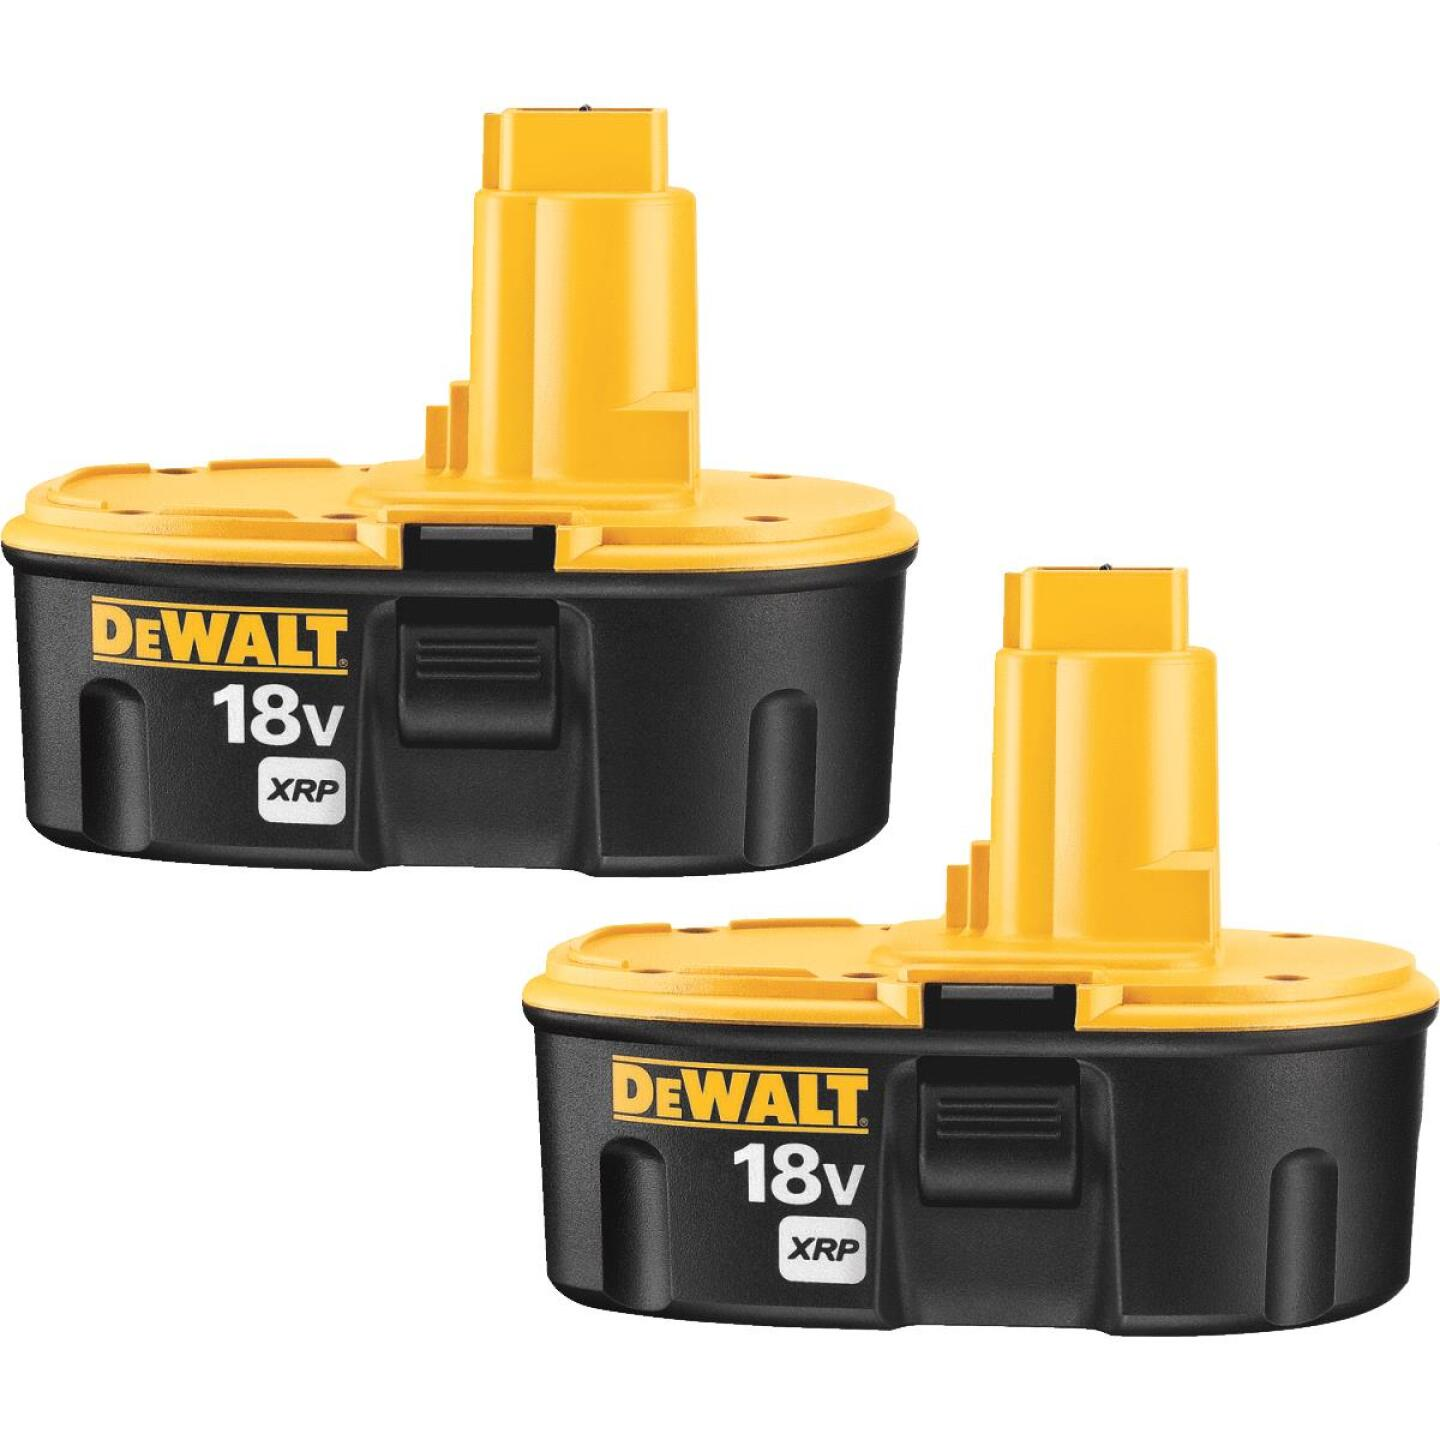 DeWalt 18 Volt XRP Nickel-Cadmium 2.4 Ah Tool Battery (2-Pack) Image 1